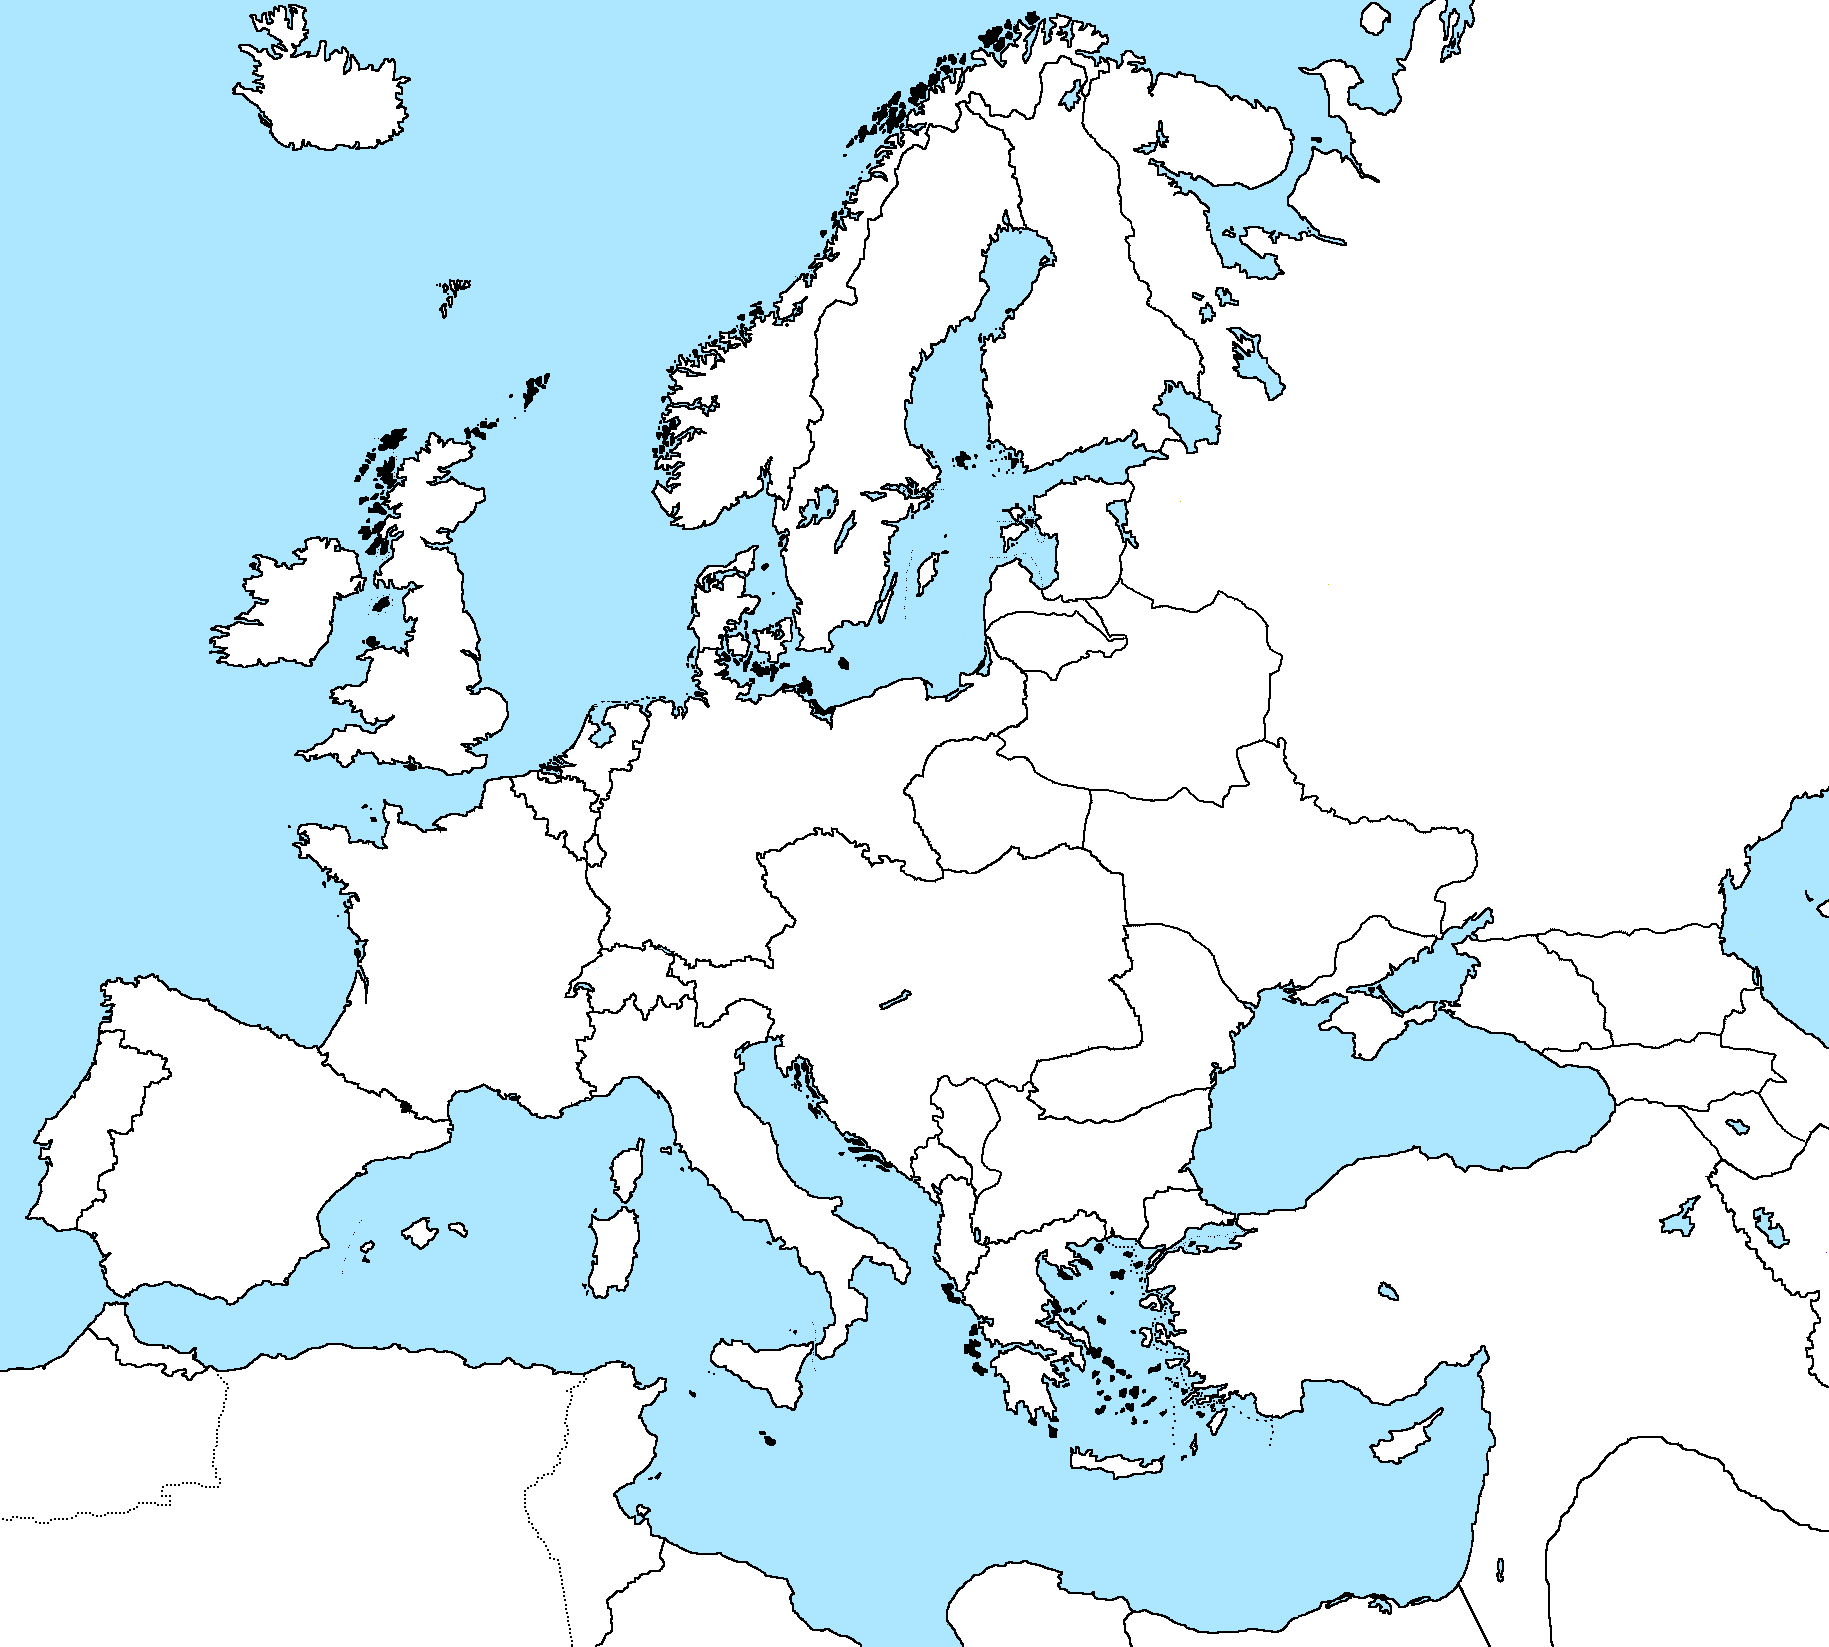 Blank Map of Europe 1918